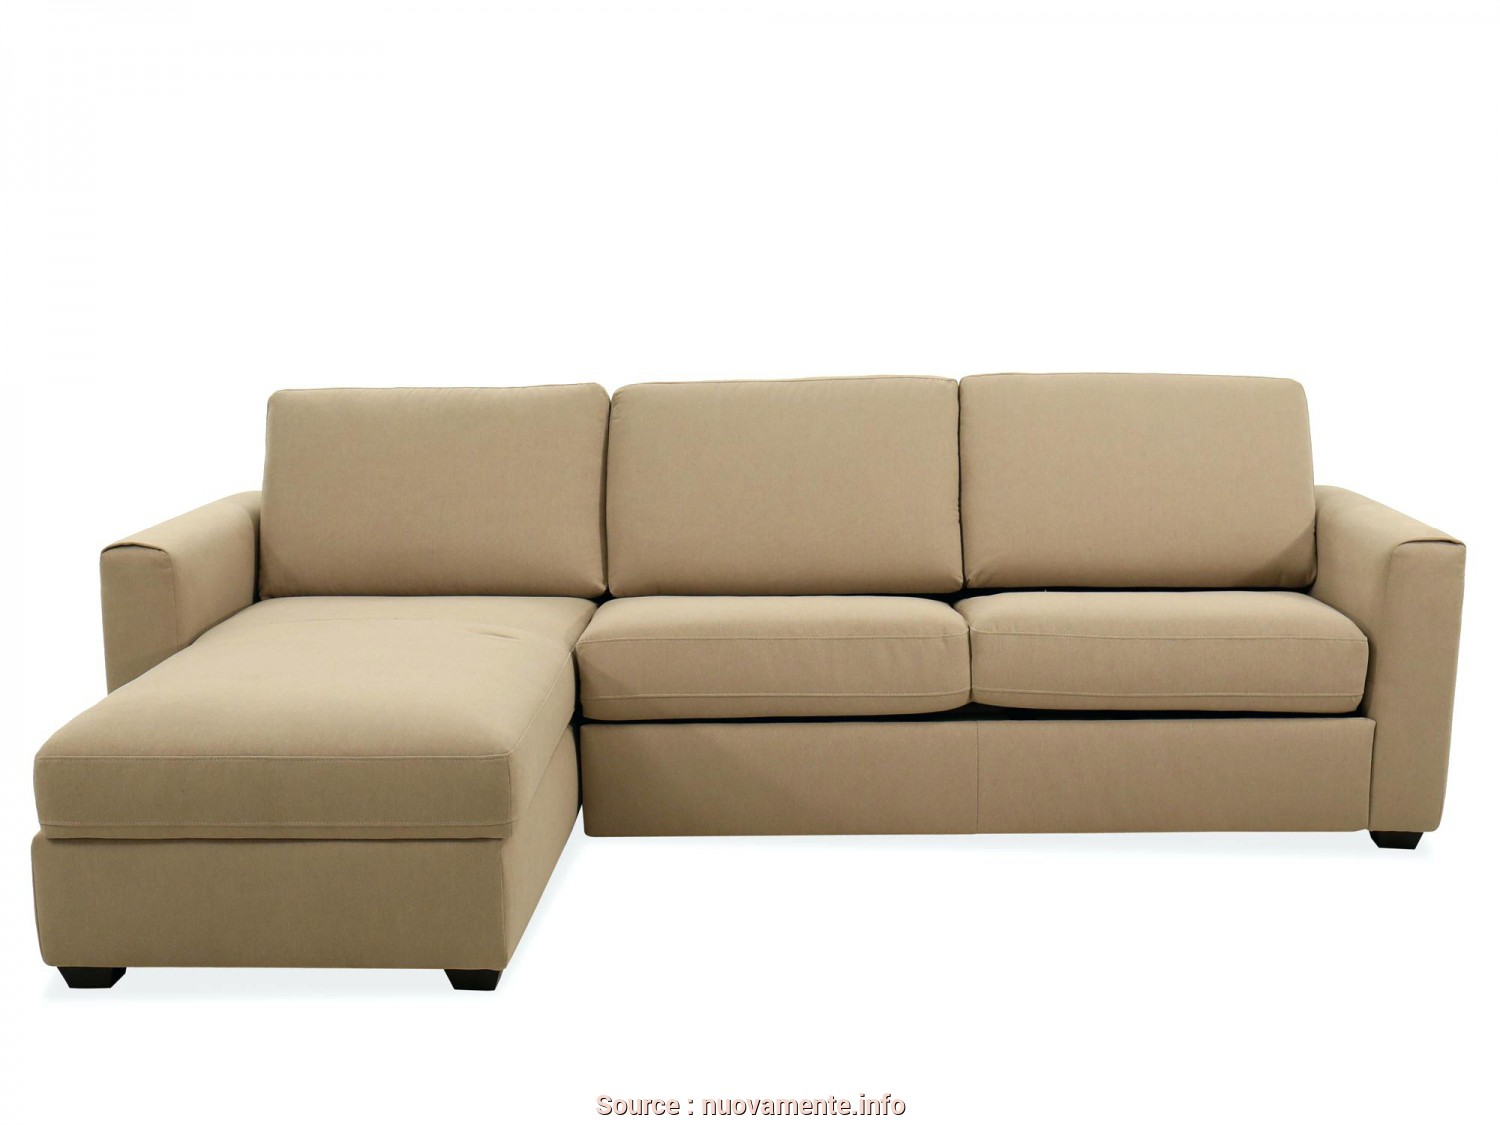 Backabro Sofa, With Chaise Longue £725 Ikea, Modesto Sofa, With Chaise Casual Storage Sleeper Sectional Leather Sofa, Storage Chaise